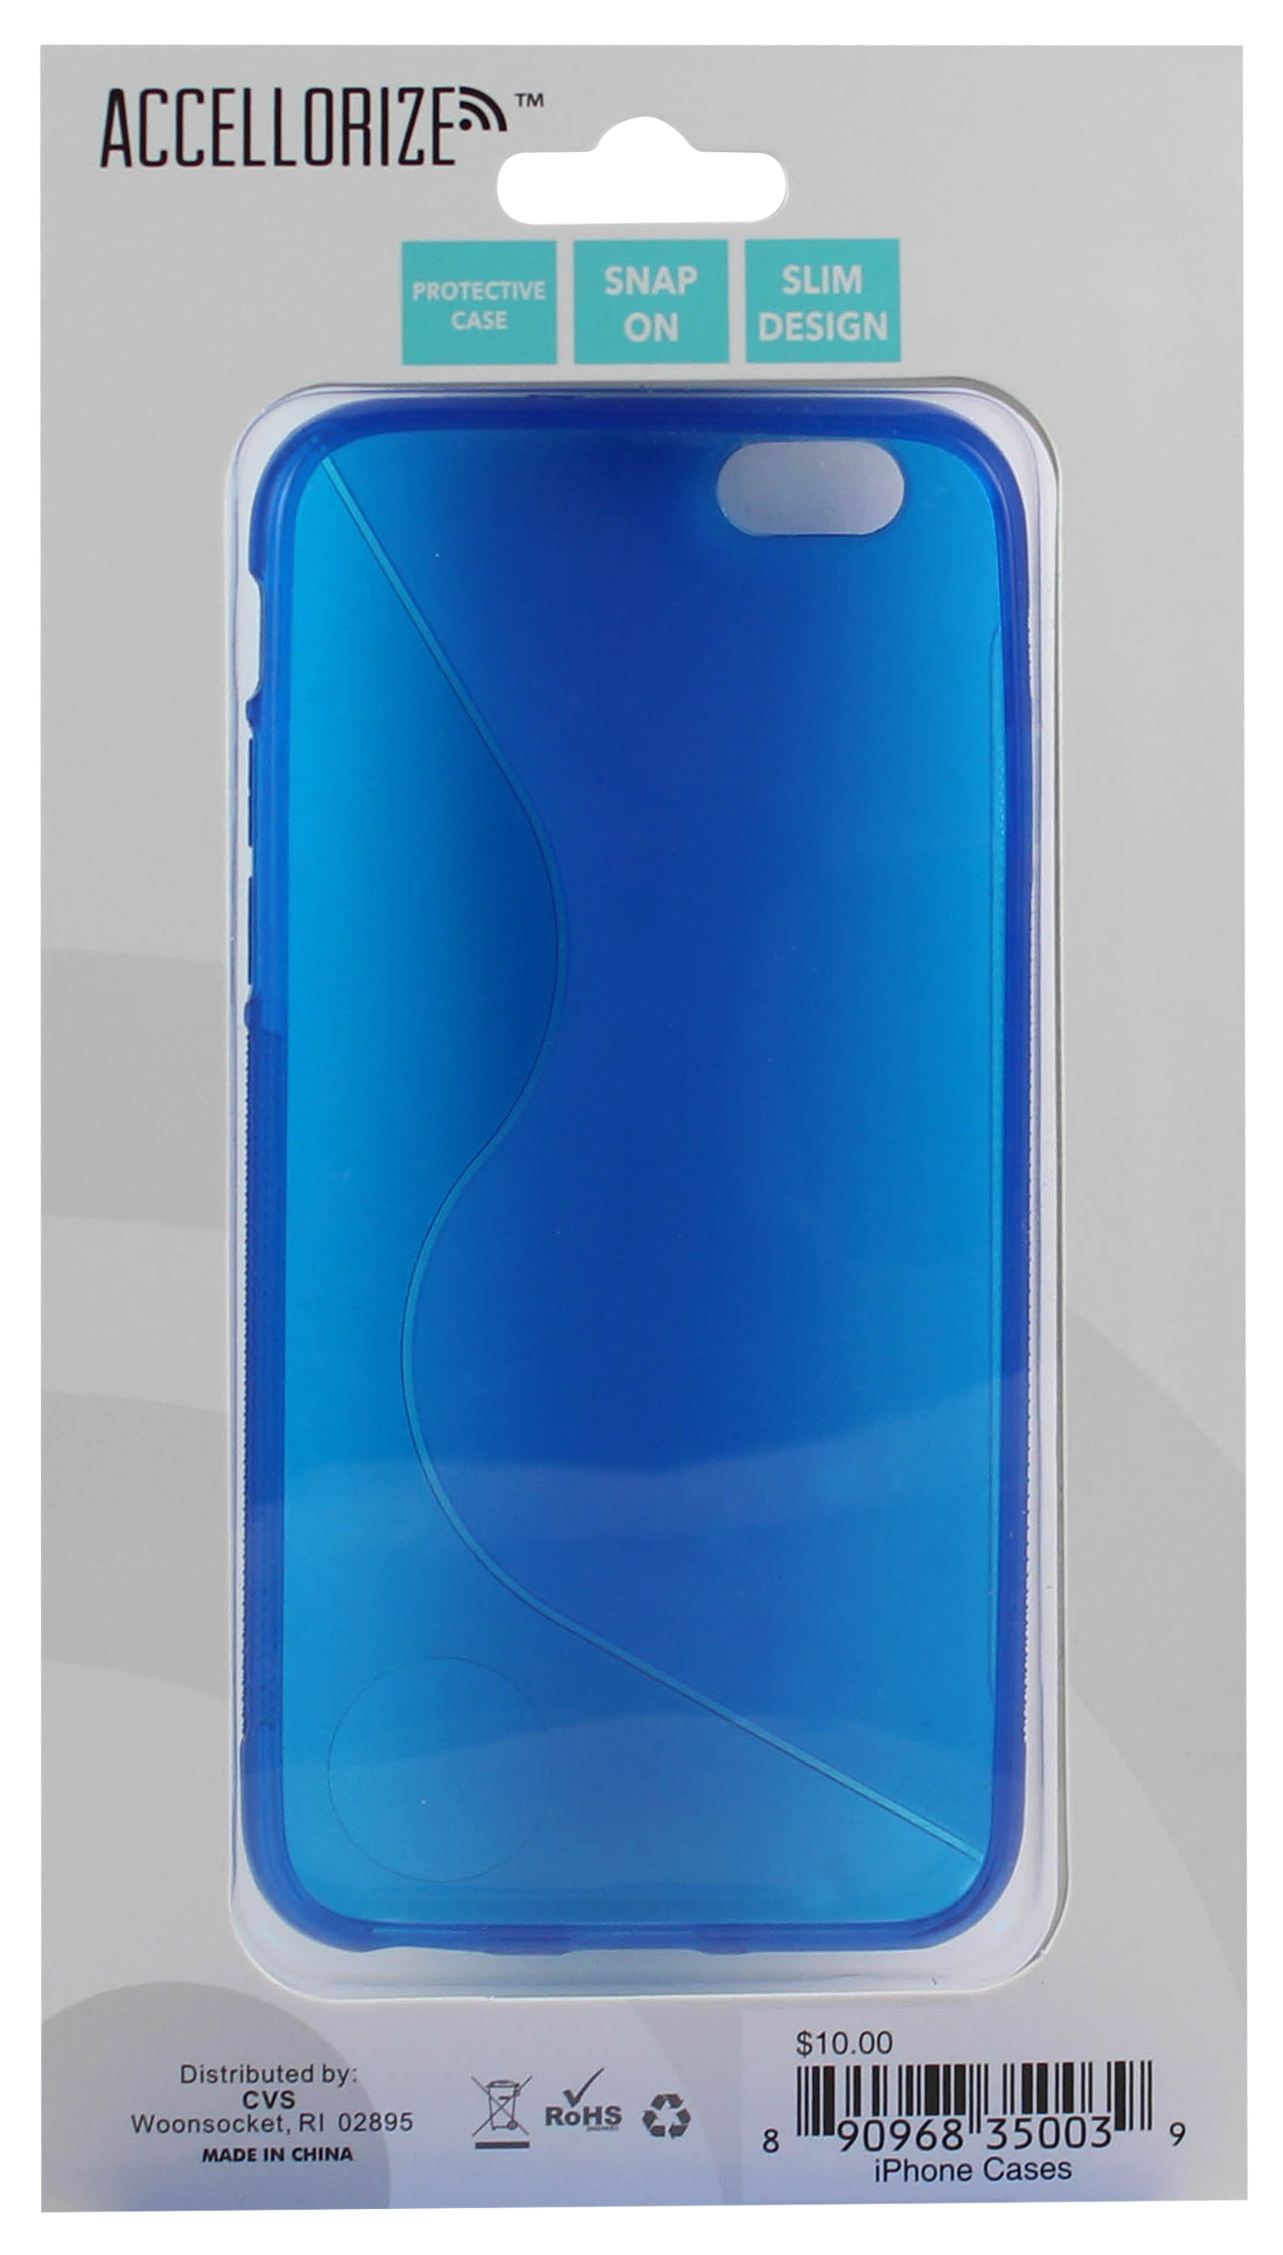 ACCELLORIZE 35003 BLUE PROTECTIVE CASE FOR IPHONE 6 MADE OF